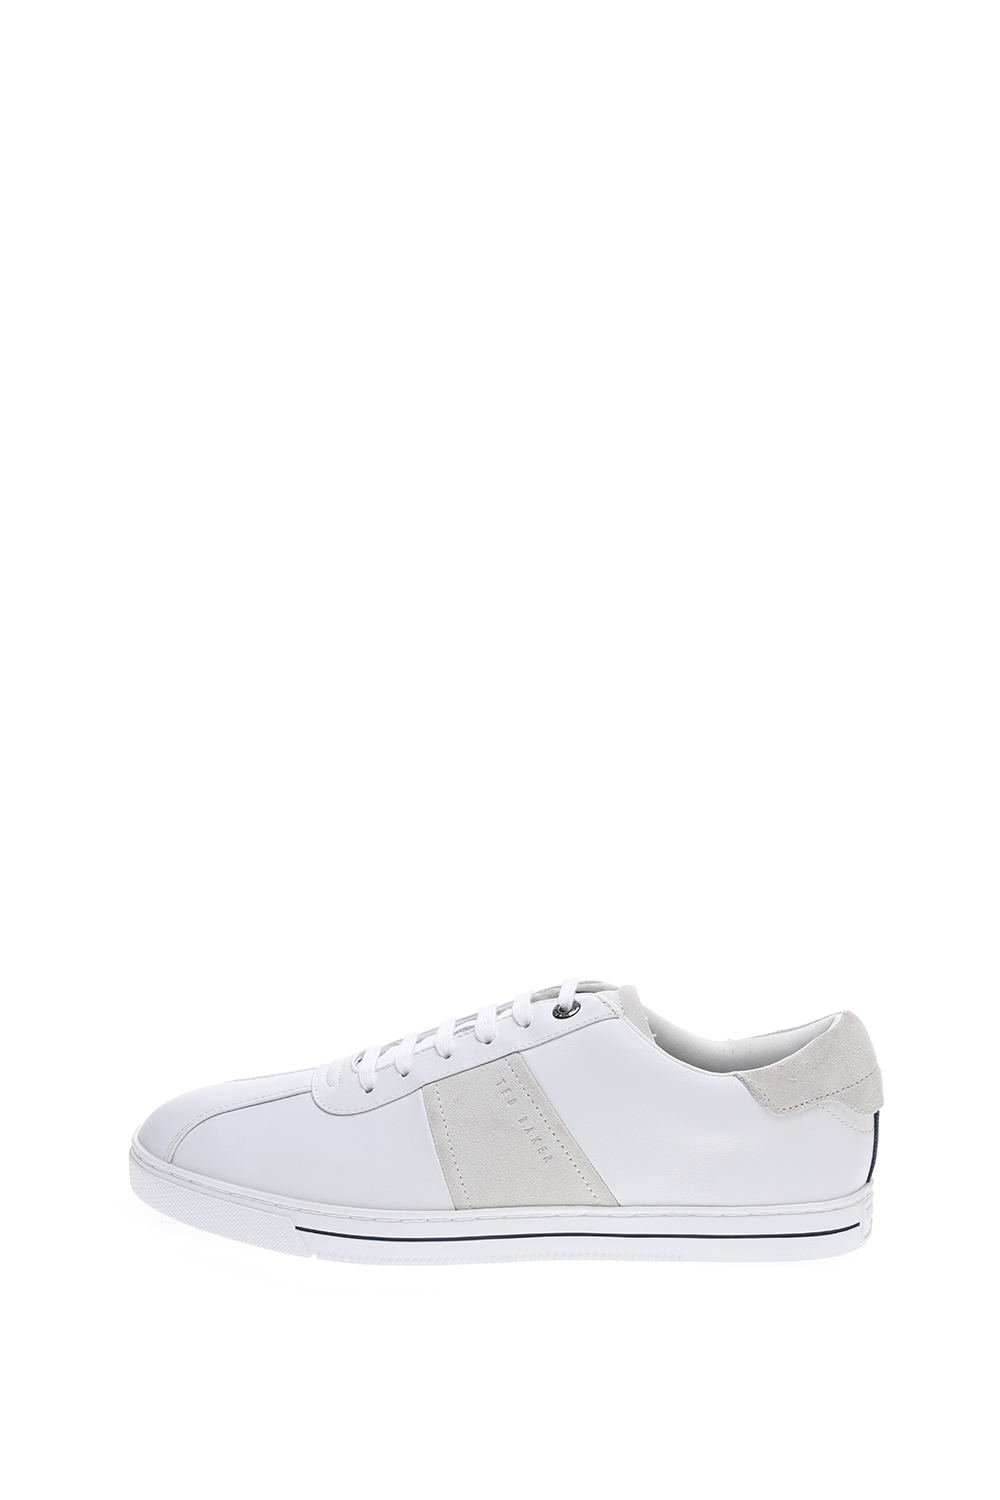 TED BAKER – Ανδρικά sneakers TED BAKER dyarko λευκά